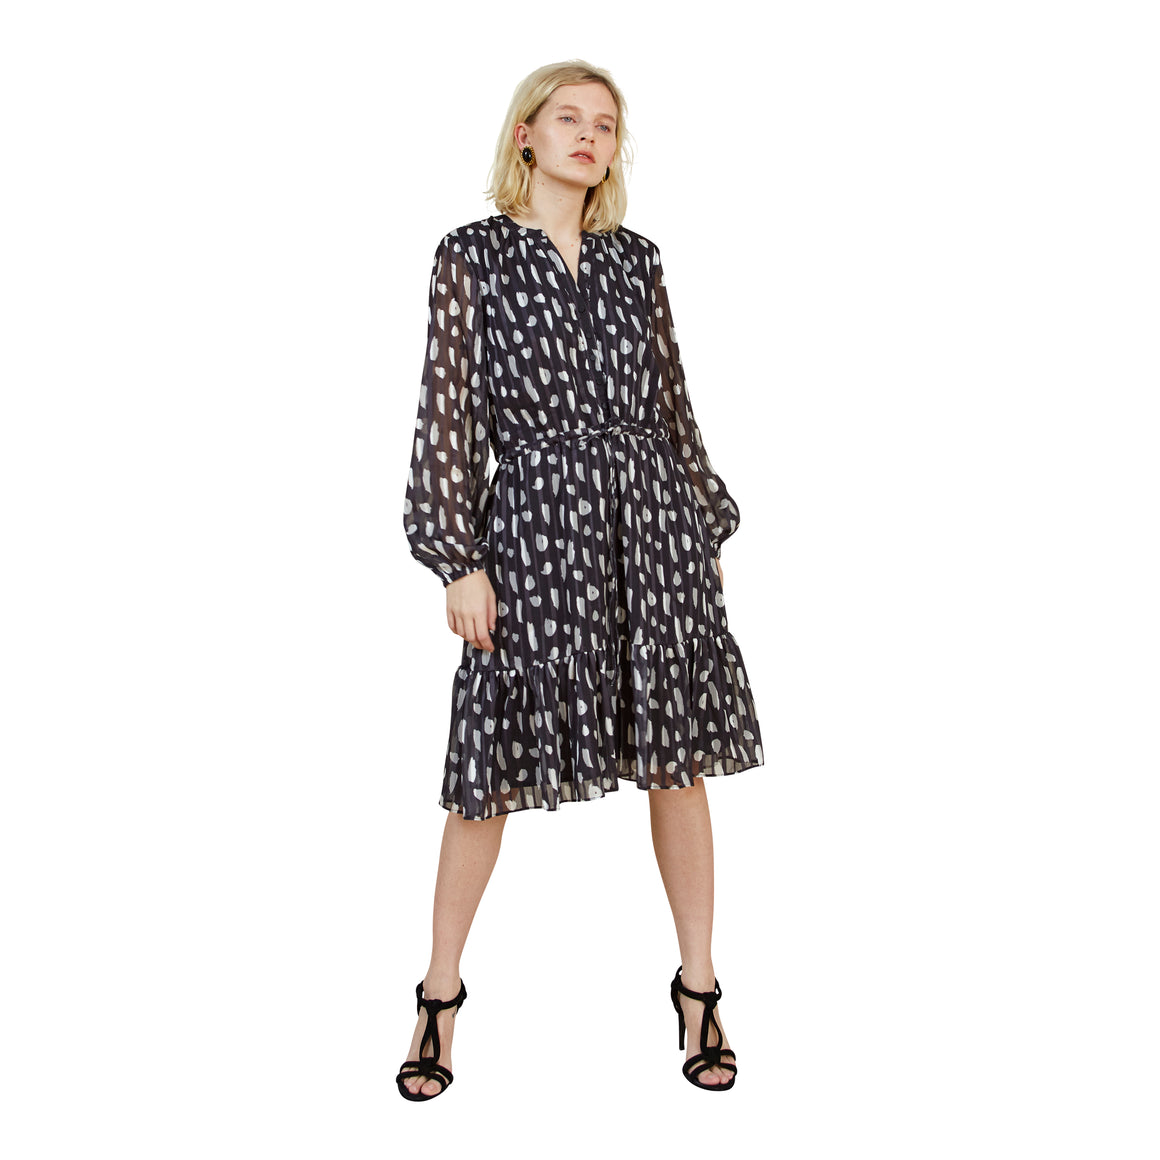 Hazel Printed Dress for Women in All Over Print